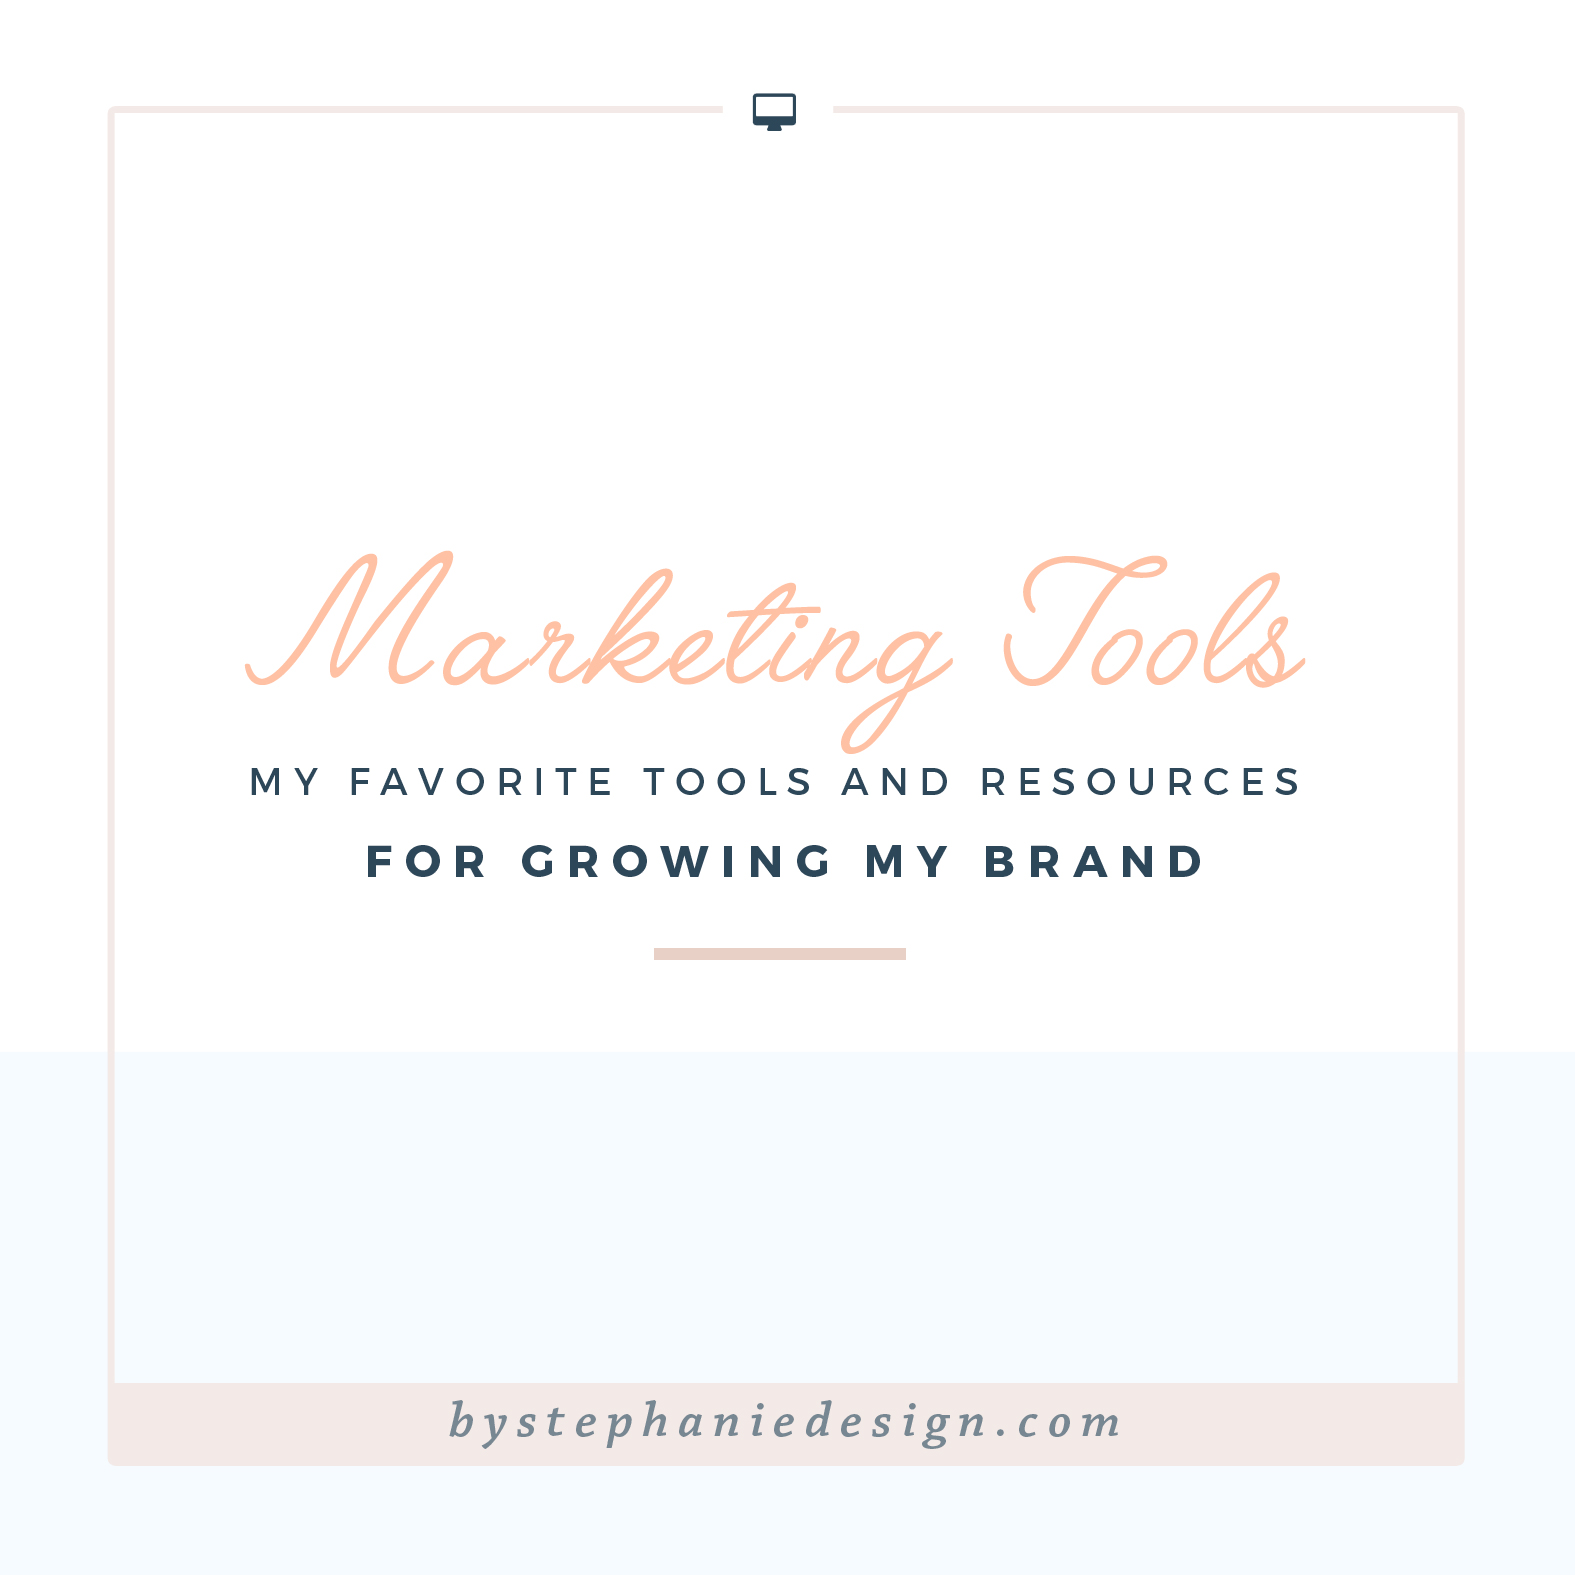 my favorite tools and resources for growing my brand - by stephanie design